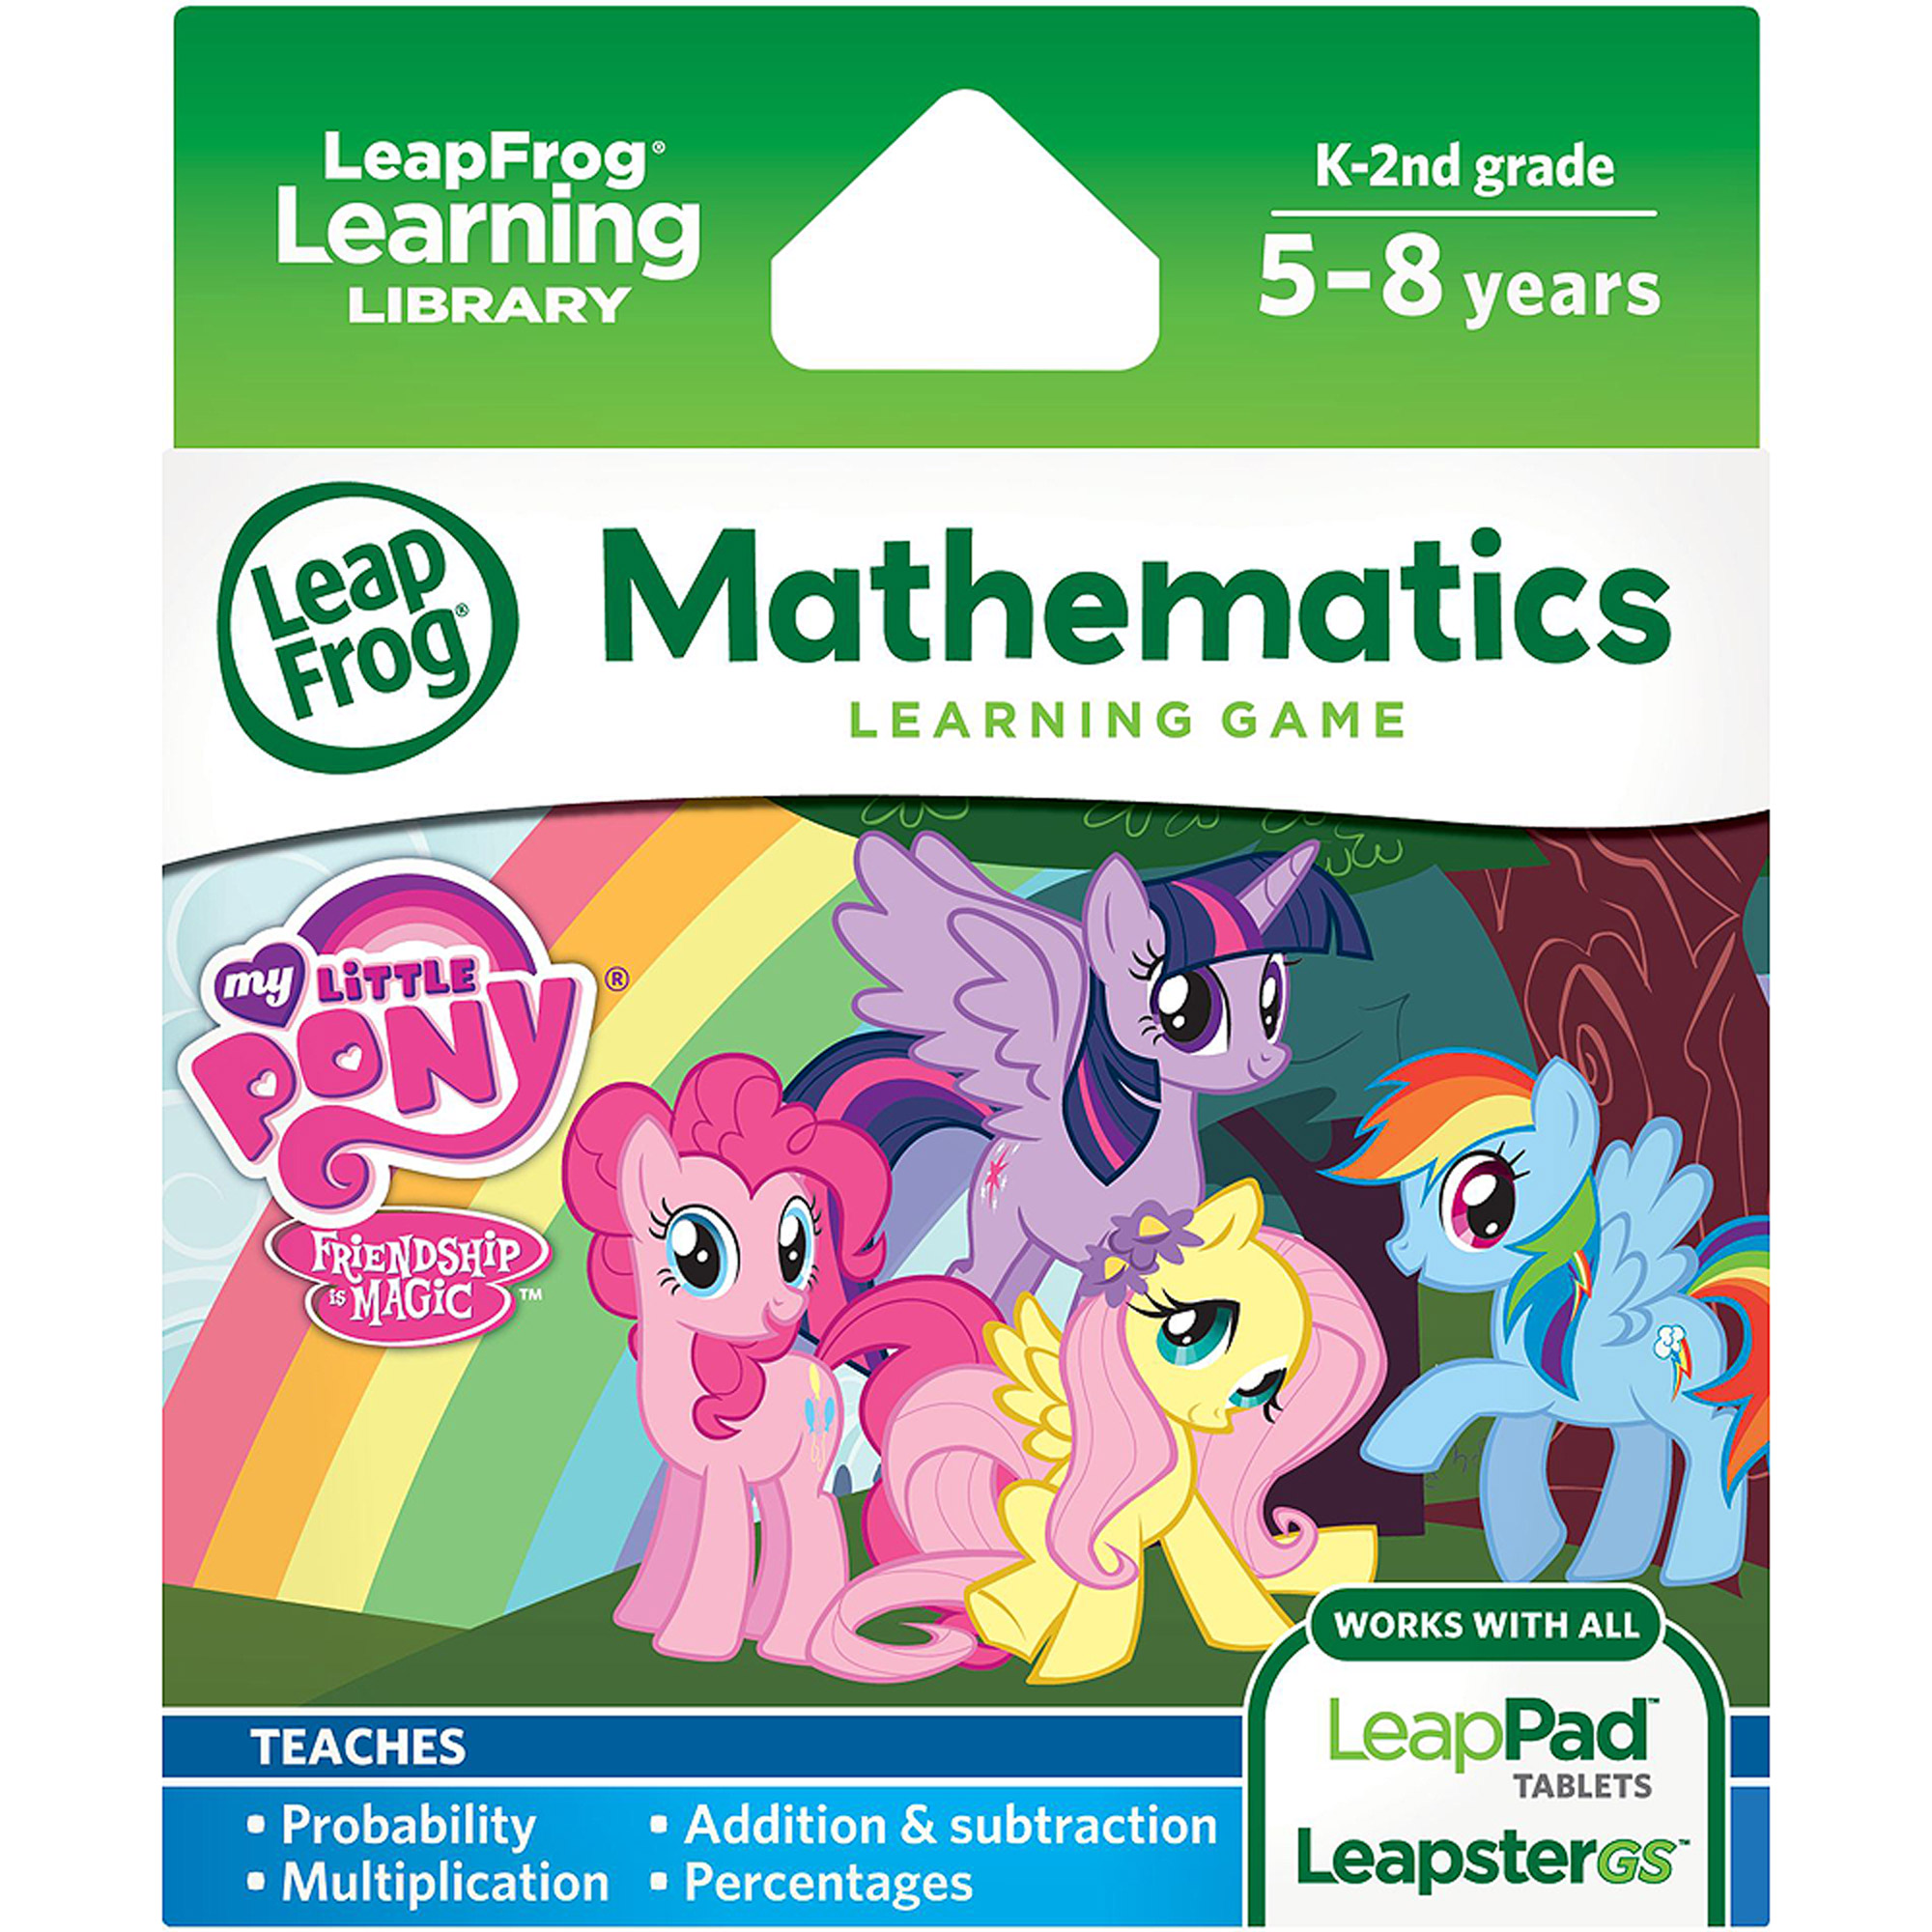 leapfrog hasbro my little pony friendship is magic learning math